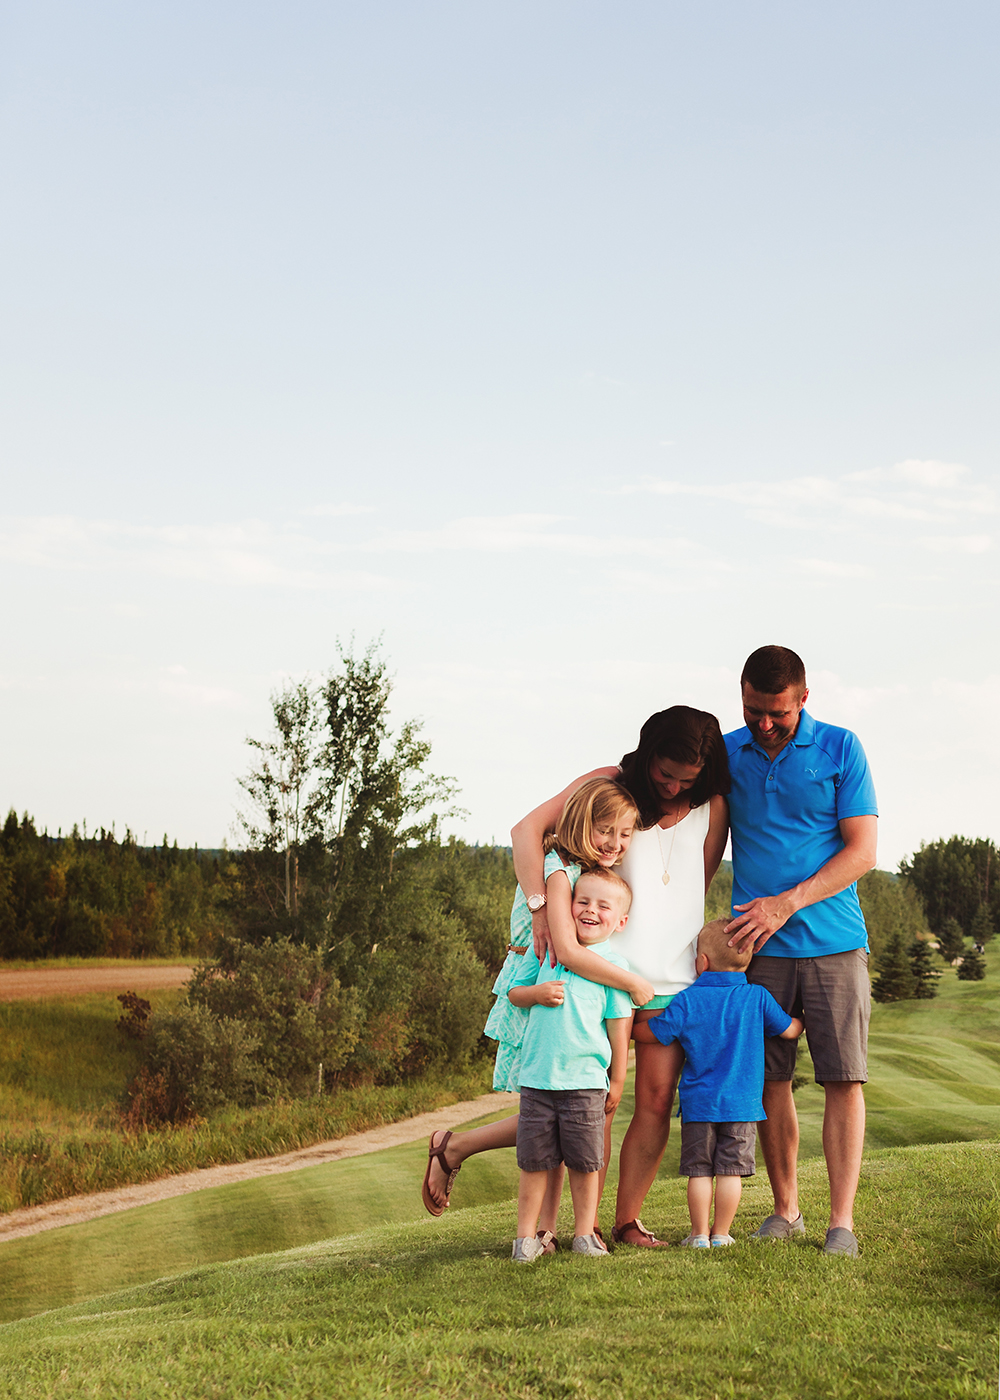 Edmonton Family Photographer_Tebb Family Sneak Peek 6.jpg